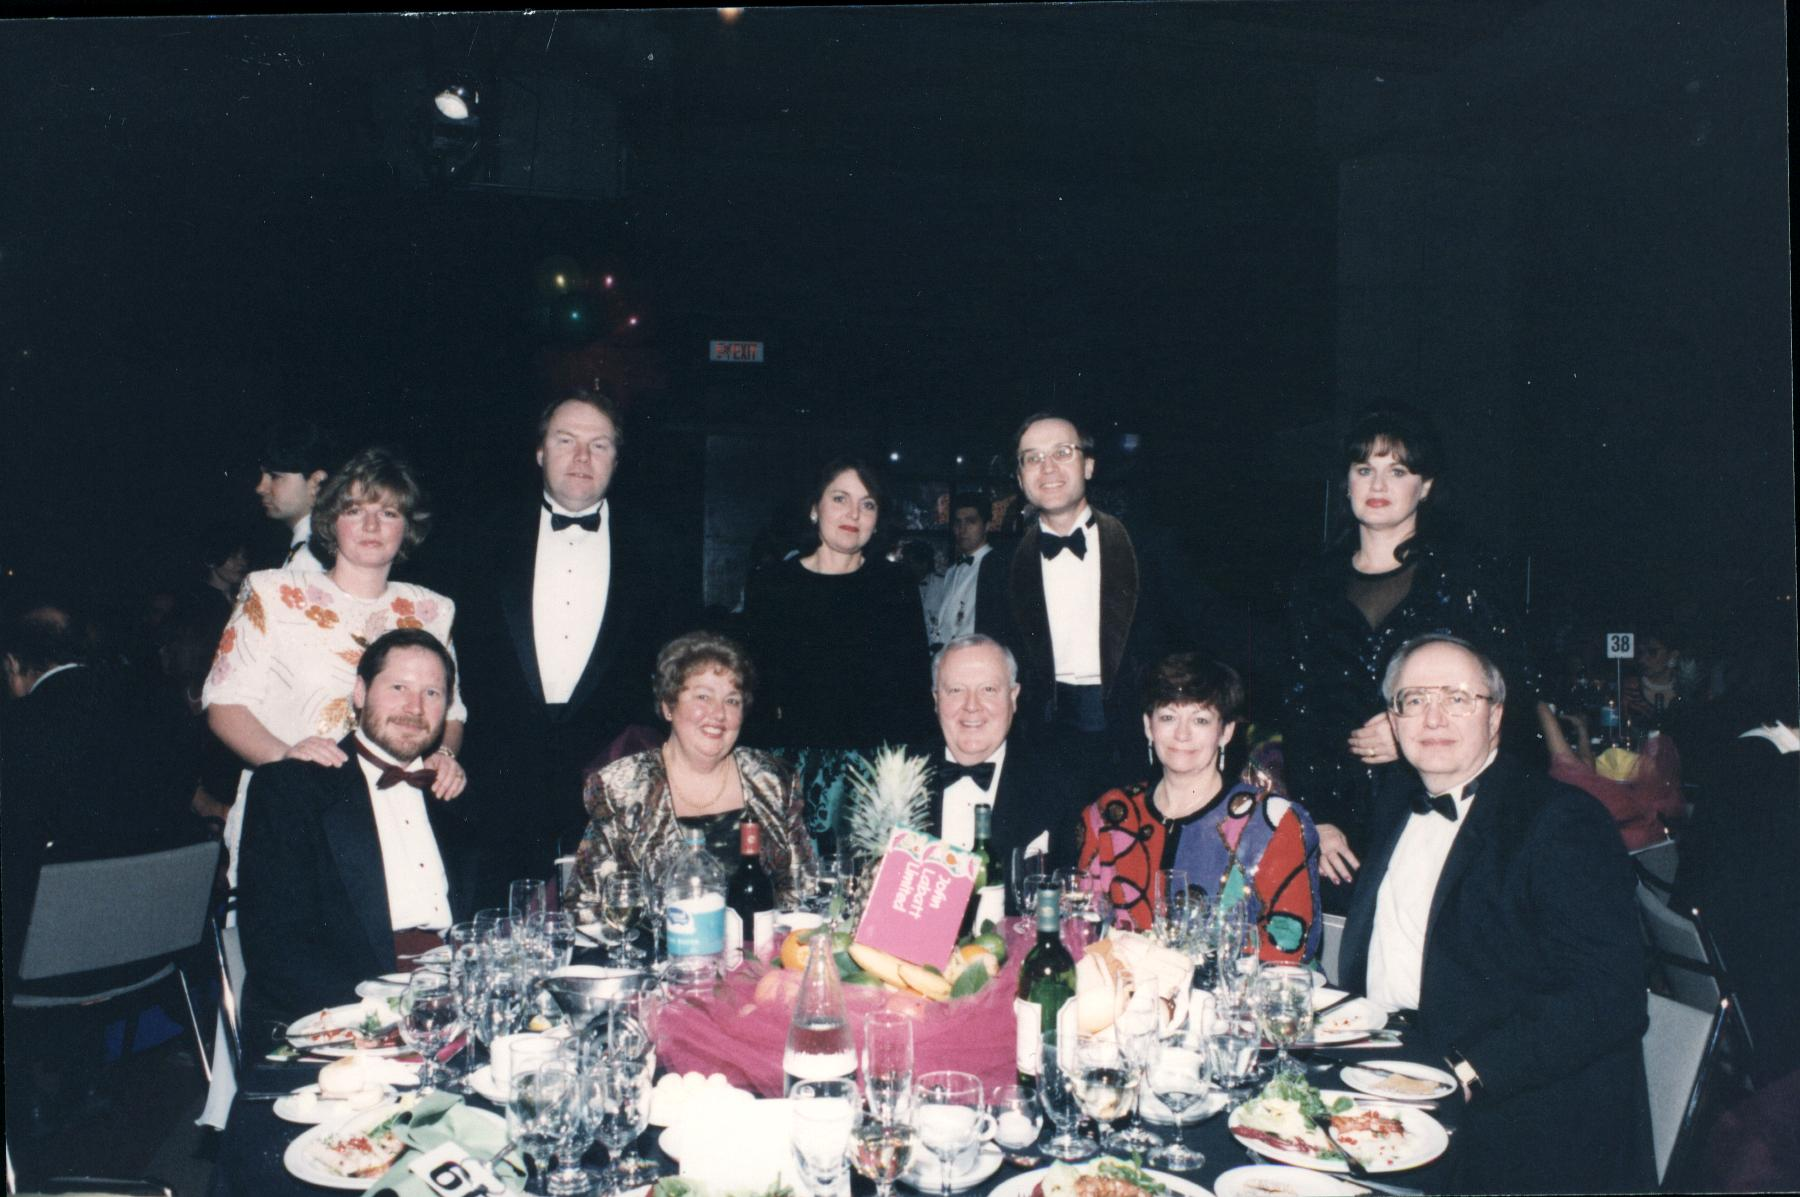 Brenda Rob Bell, Graham Freeman, Susan Ron Willoughby, Anthony Lloyd, Nancy, Susan Freeman, George.jpg